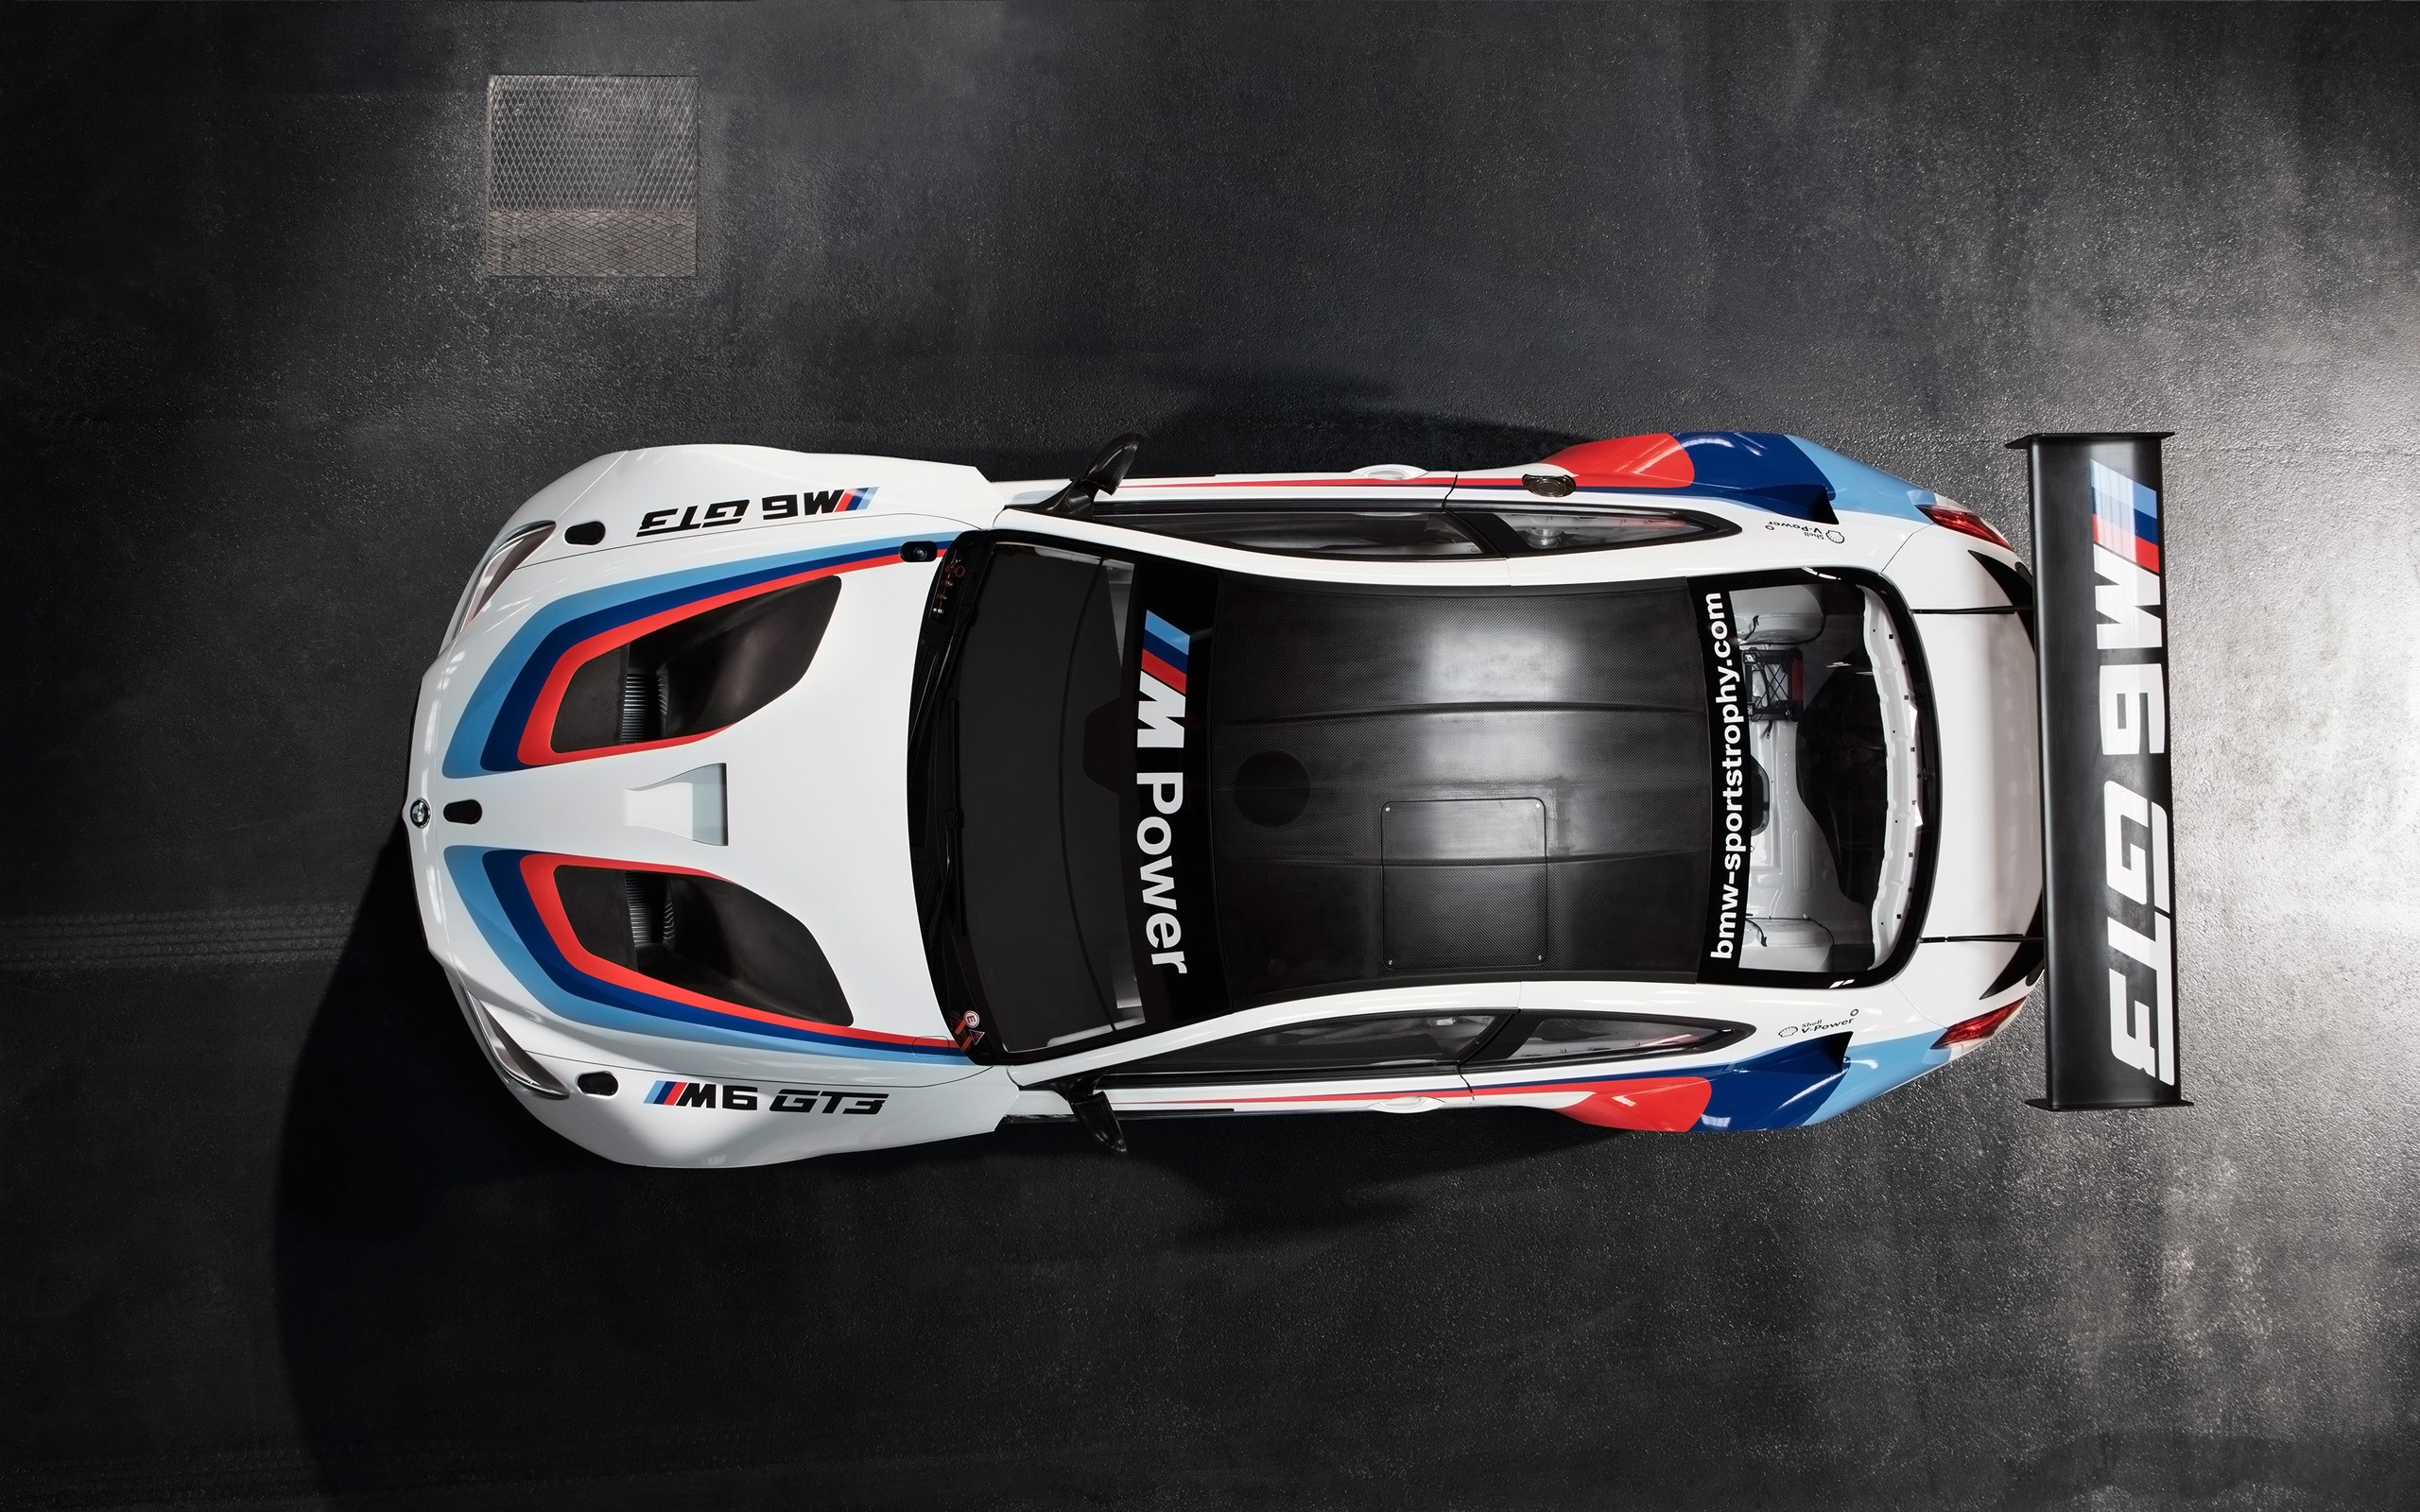 2016 Bmw M6 Gt3 2 Wallpaper Hd Car Wallpapers Id 5896